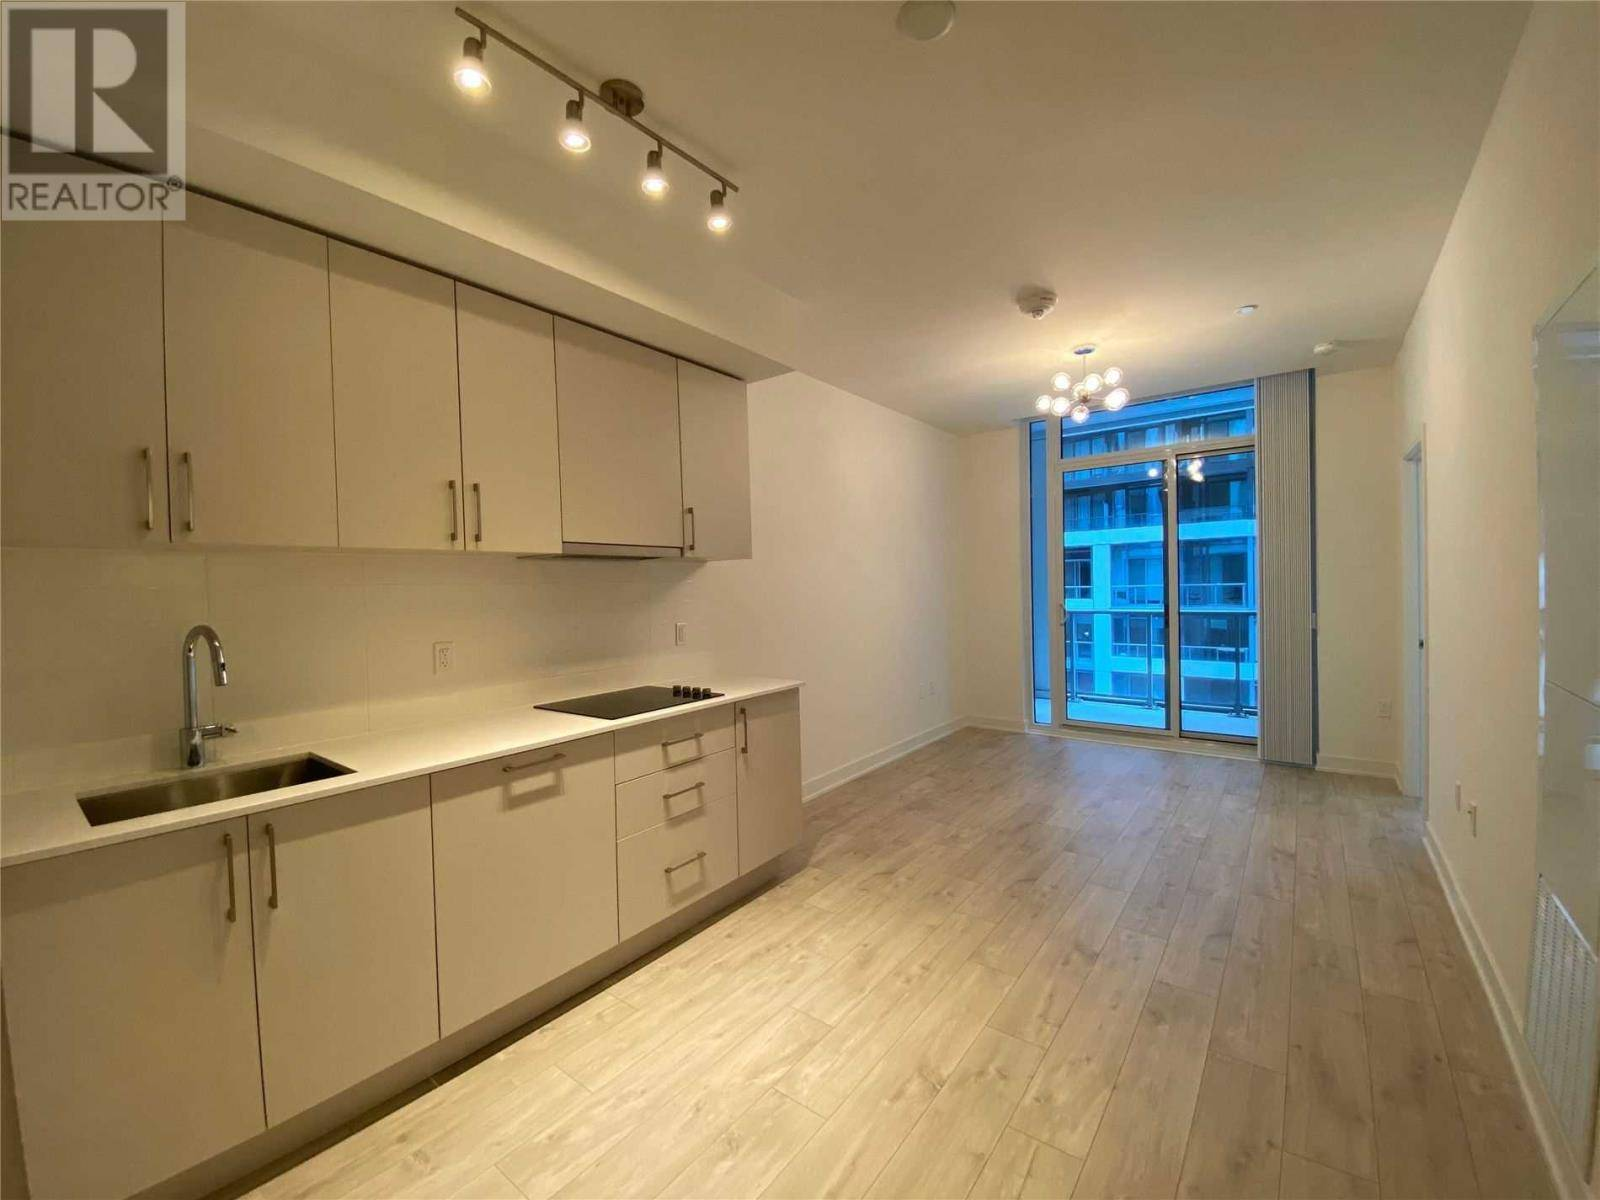 Apartment for rent at 576 Front St West Unit 819E Toronto Ontario - MLS: C4673411